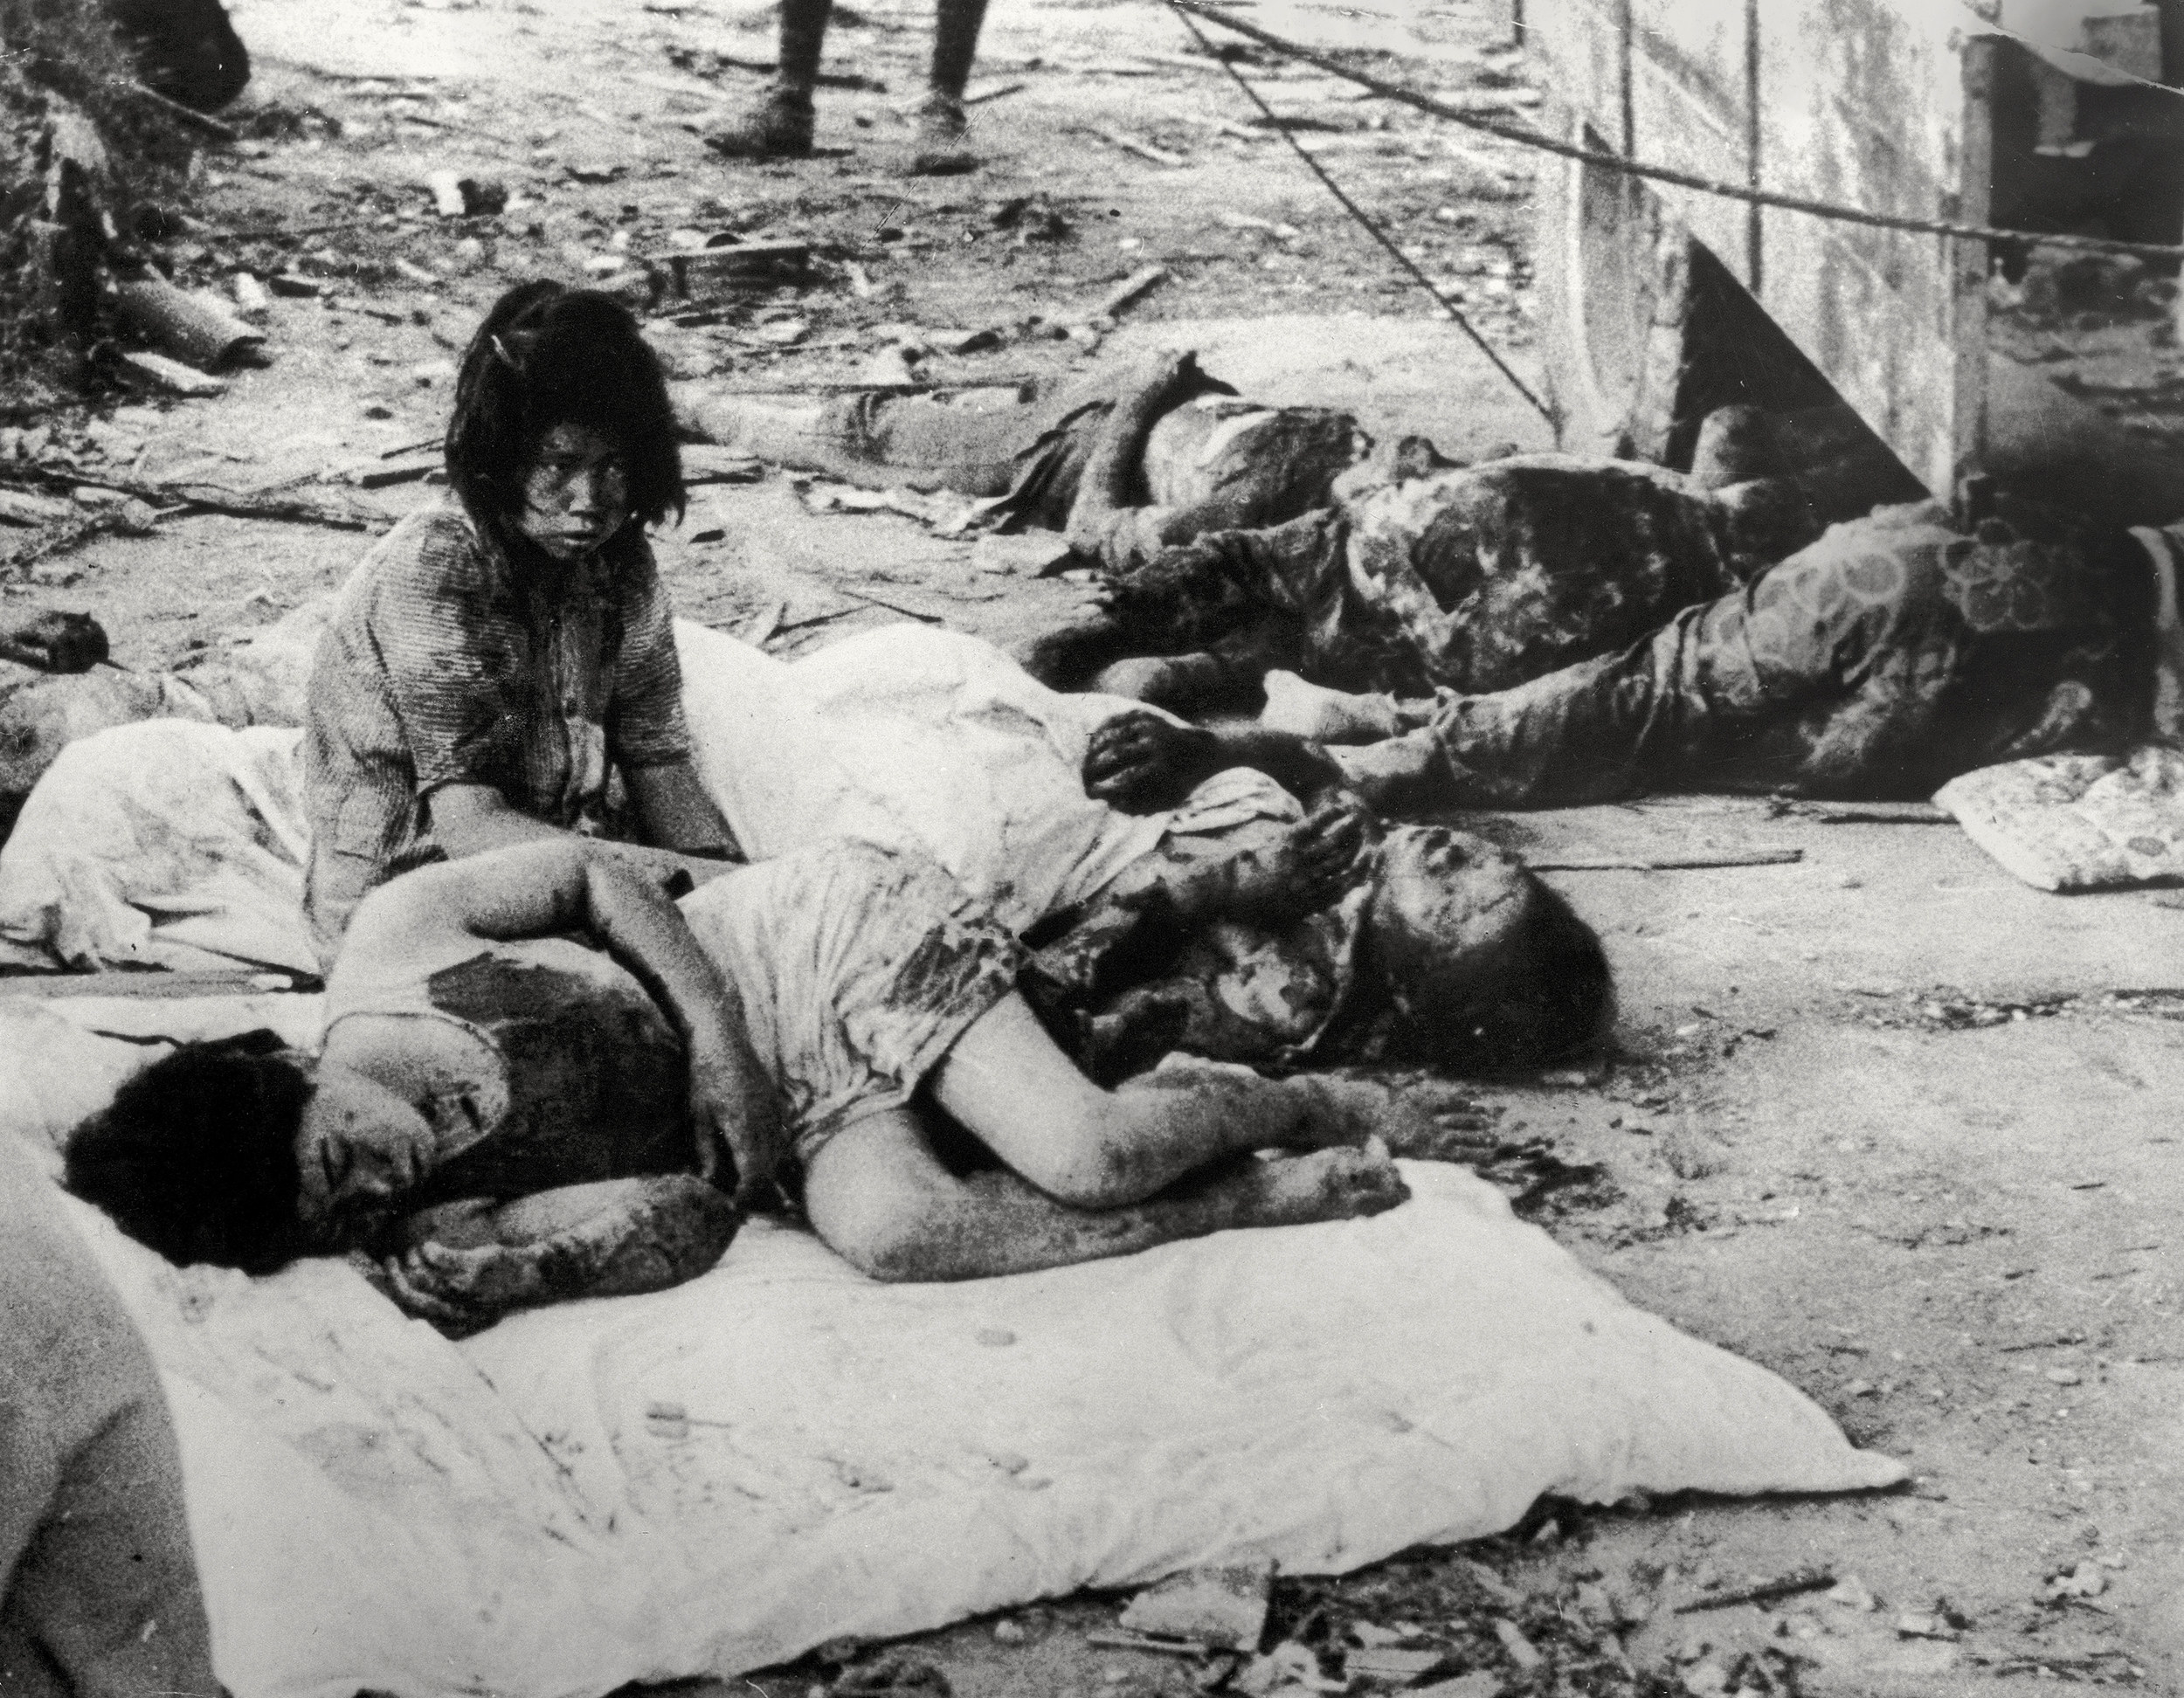 A young girl sits by four badly burned and bloodied women lying down on the ground